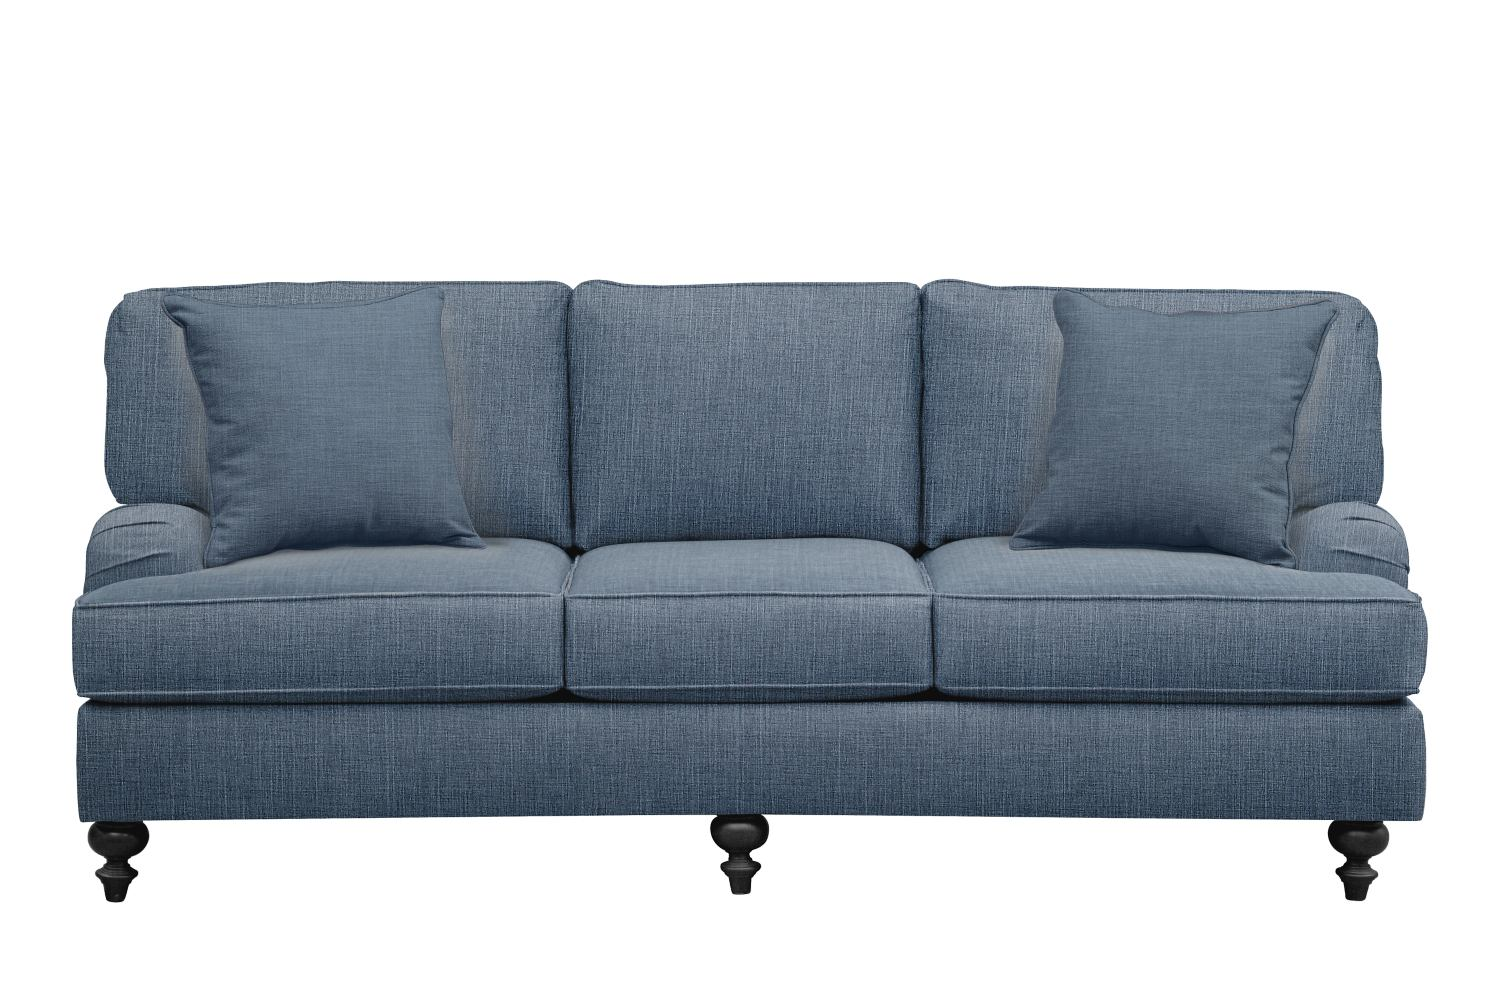 "Living Room Furniture - Avery English Arm Sofa 86"" Milford II Indigo  w/ Milford II Indigo Pillow"